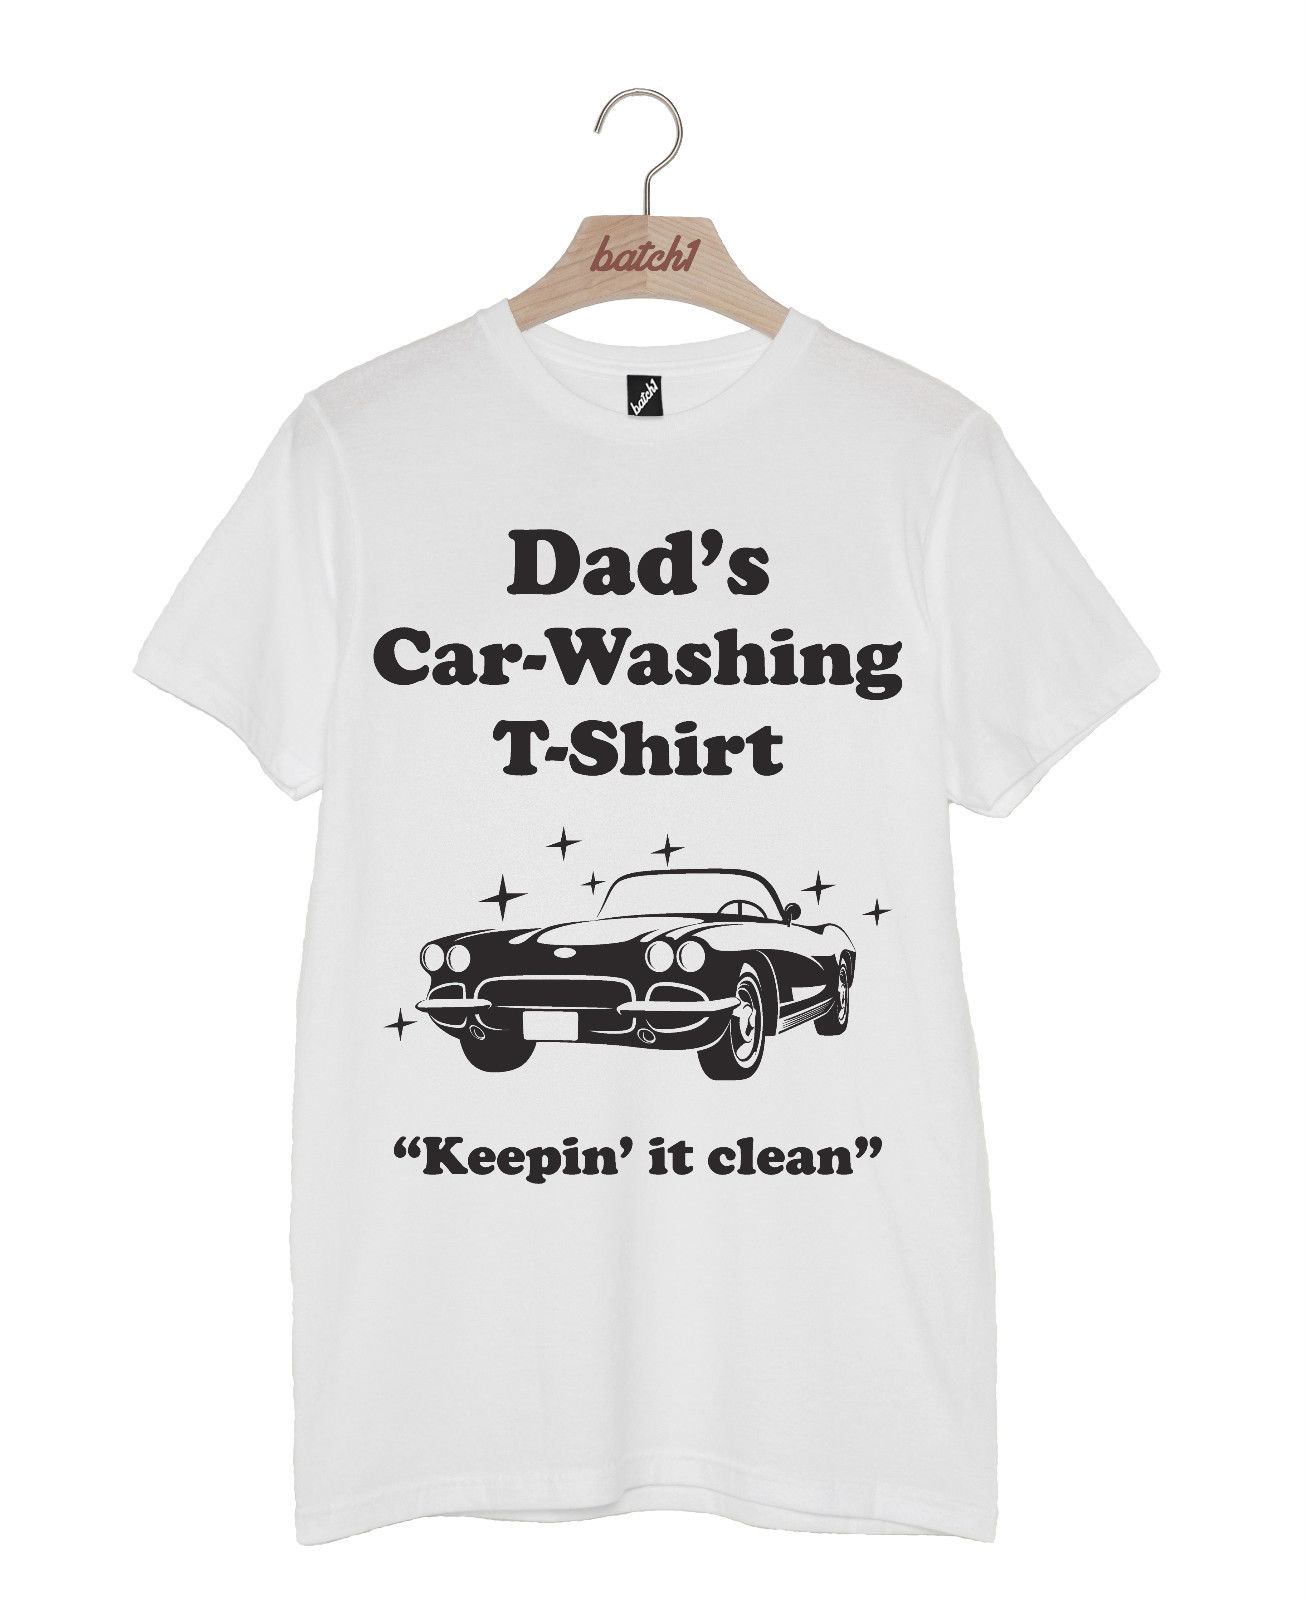 BATCH1 DADS CAR WASHING FATHERS DAY XMAS GIFT BIRTHDAY PRESENT MENS T-SHIRT